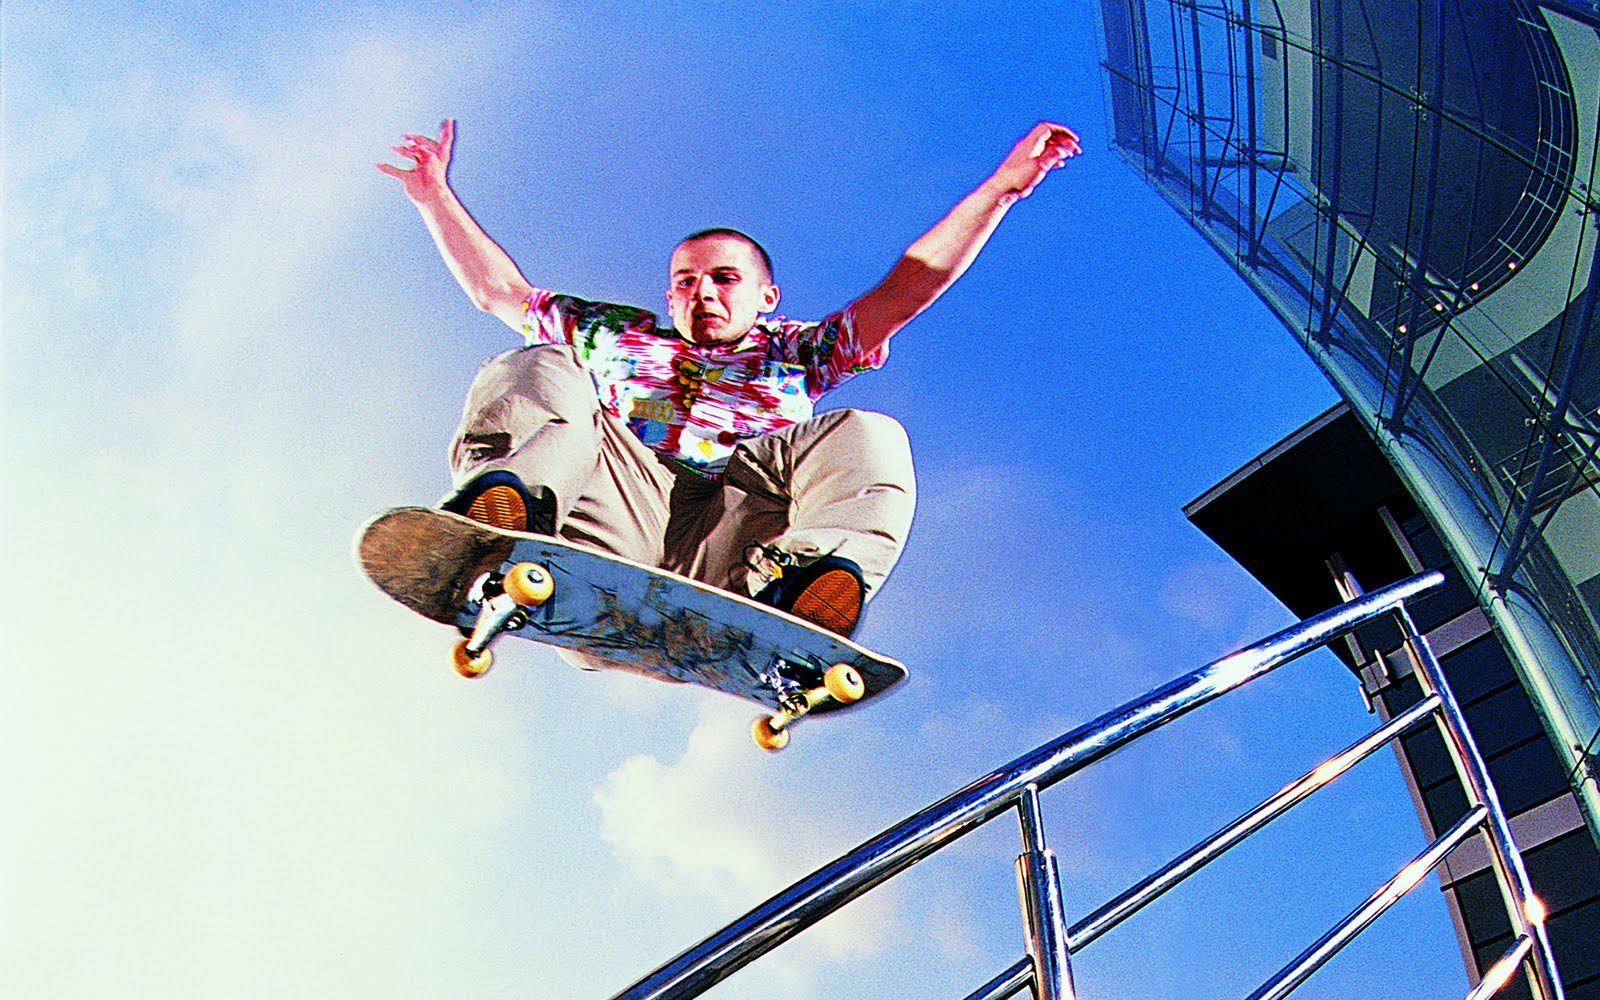 ONLY 4 WALLPAPER: AMAZING EXTREME SPORTS WALLPAPER [PART 12]